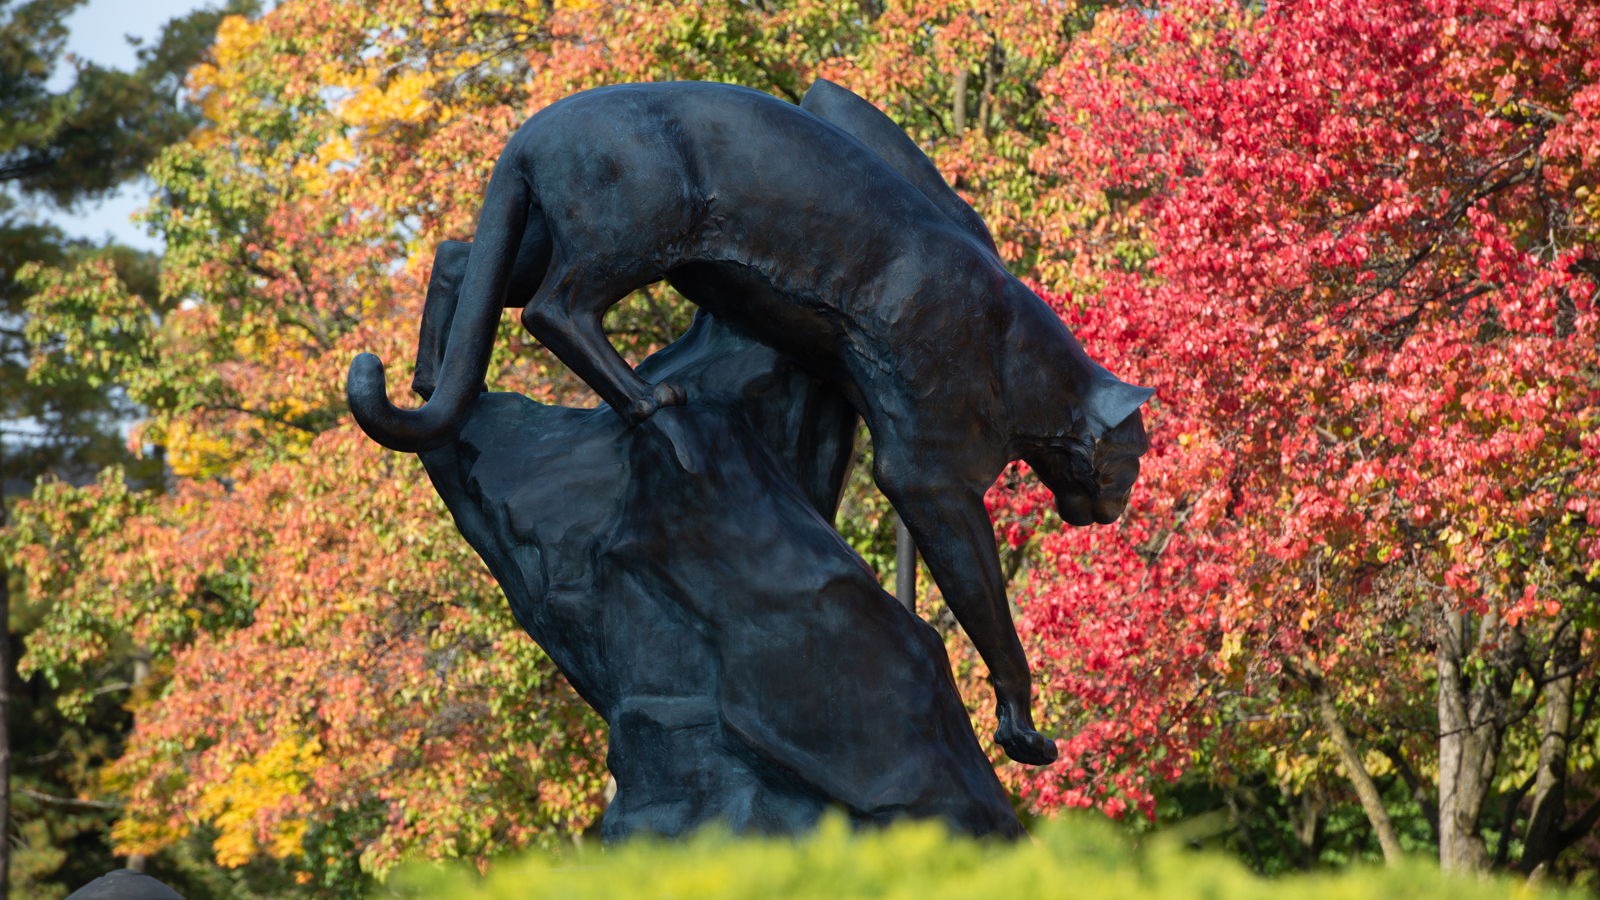 SIUE Cougar statue on campus